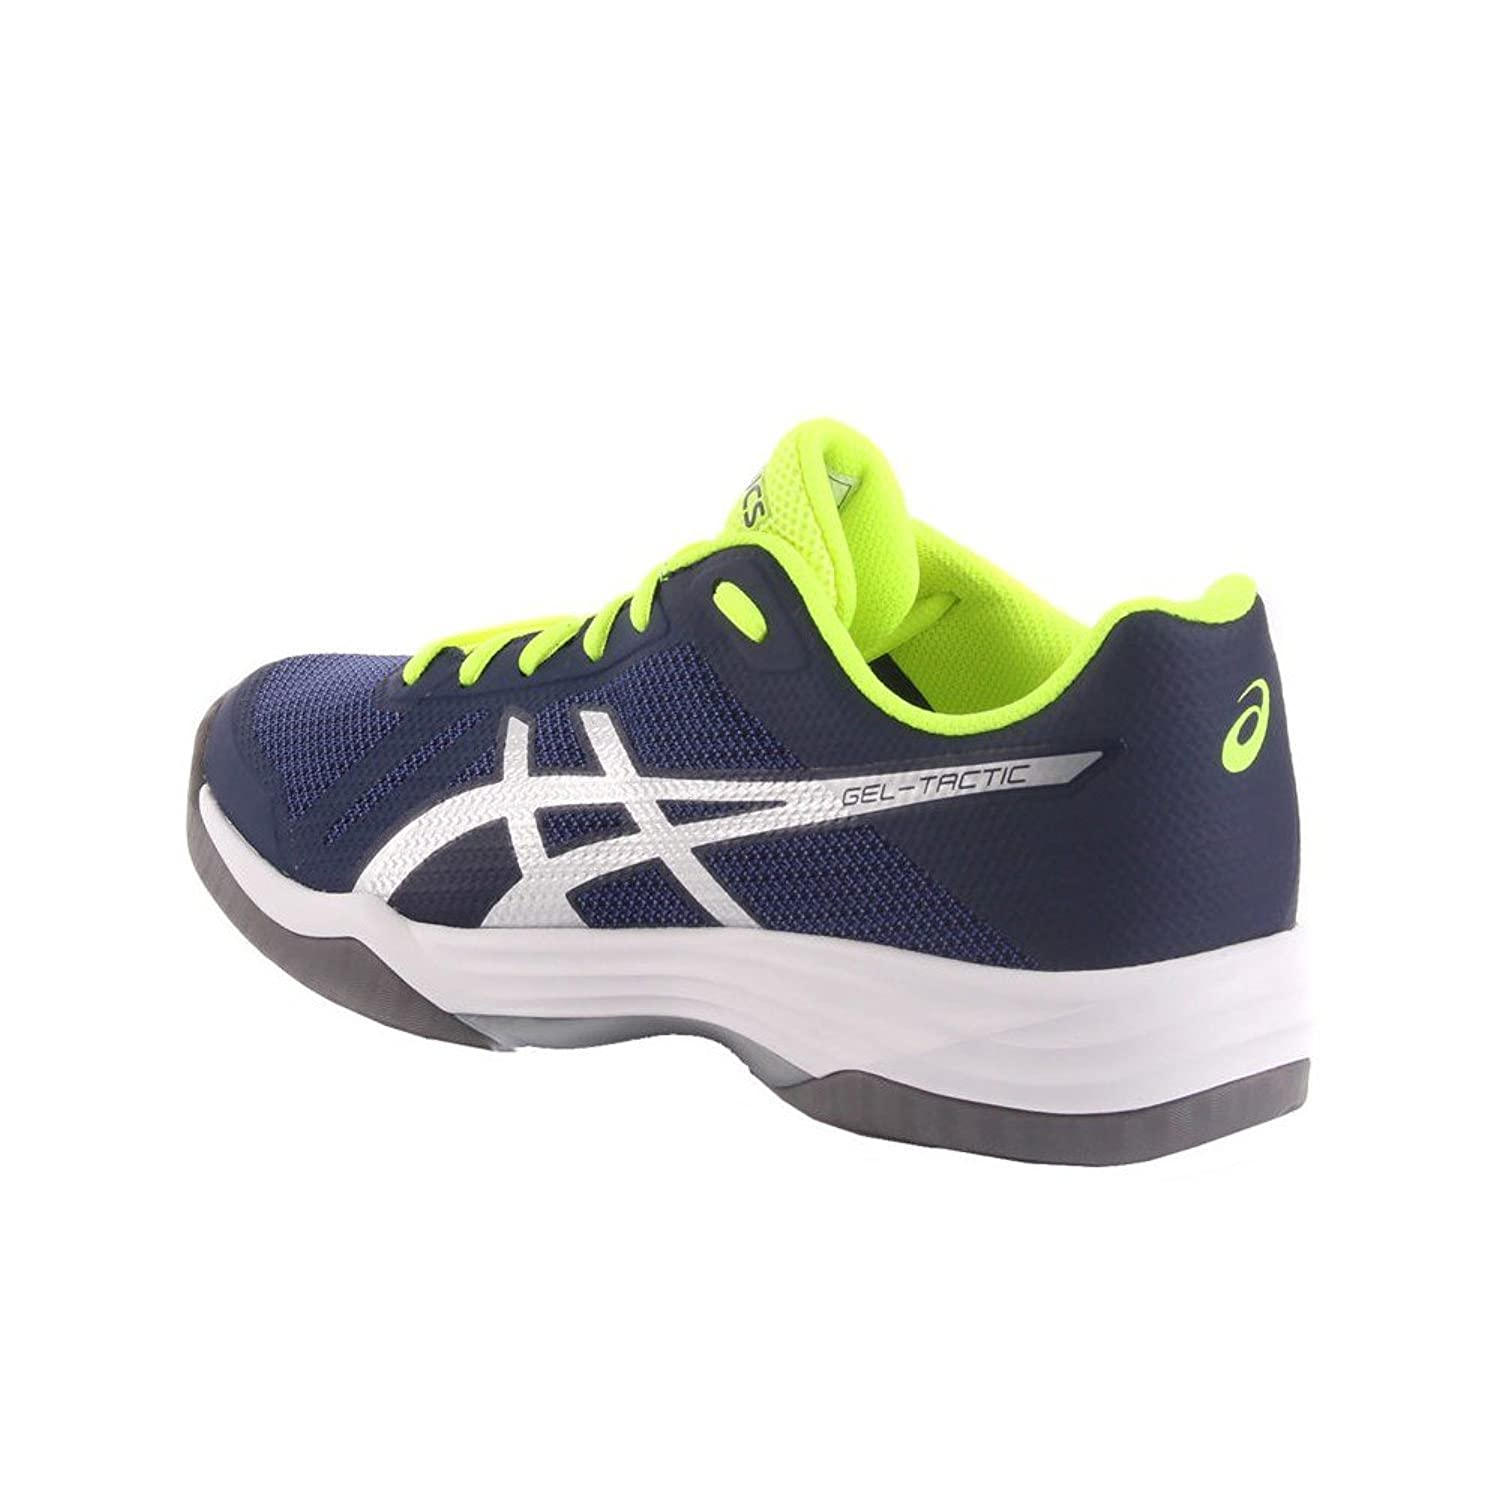 Asics Gel-Tactic, Chaussures de Volleyball Homme, Multicolore (Peacoat/Silver 400), 42.5 EU